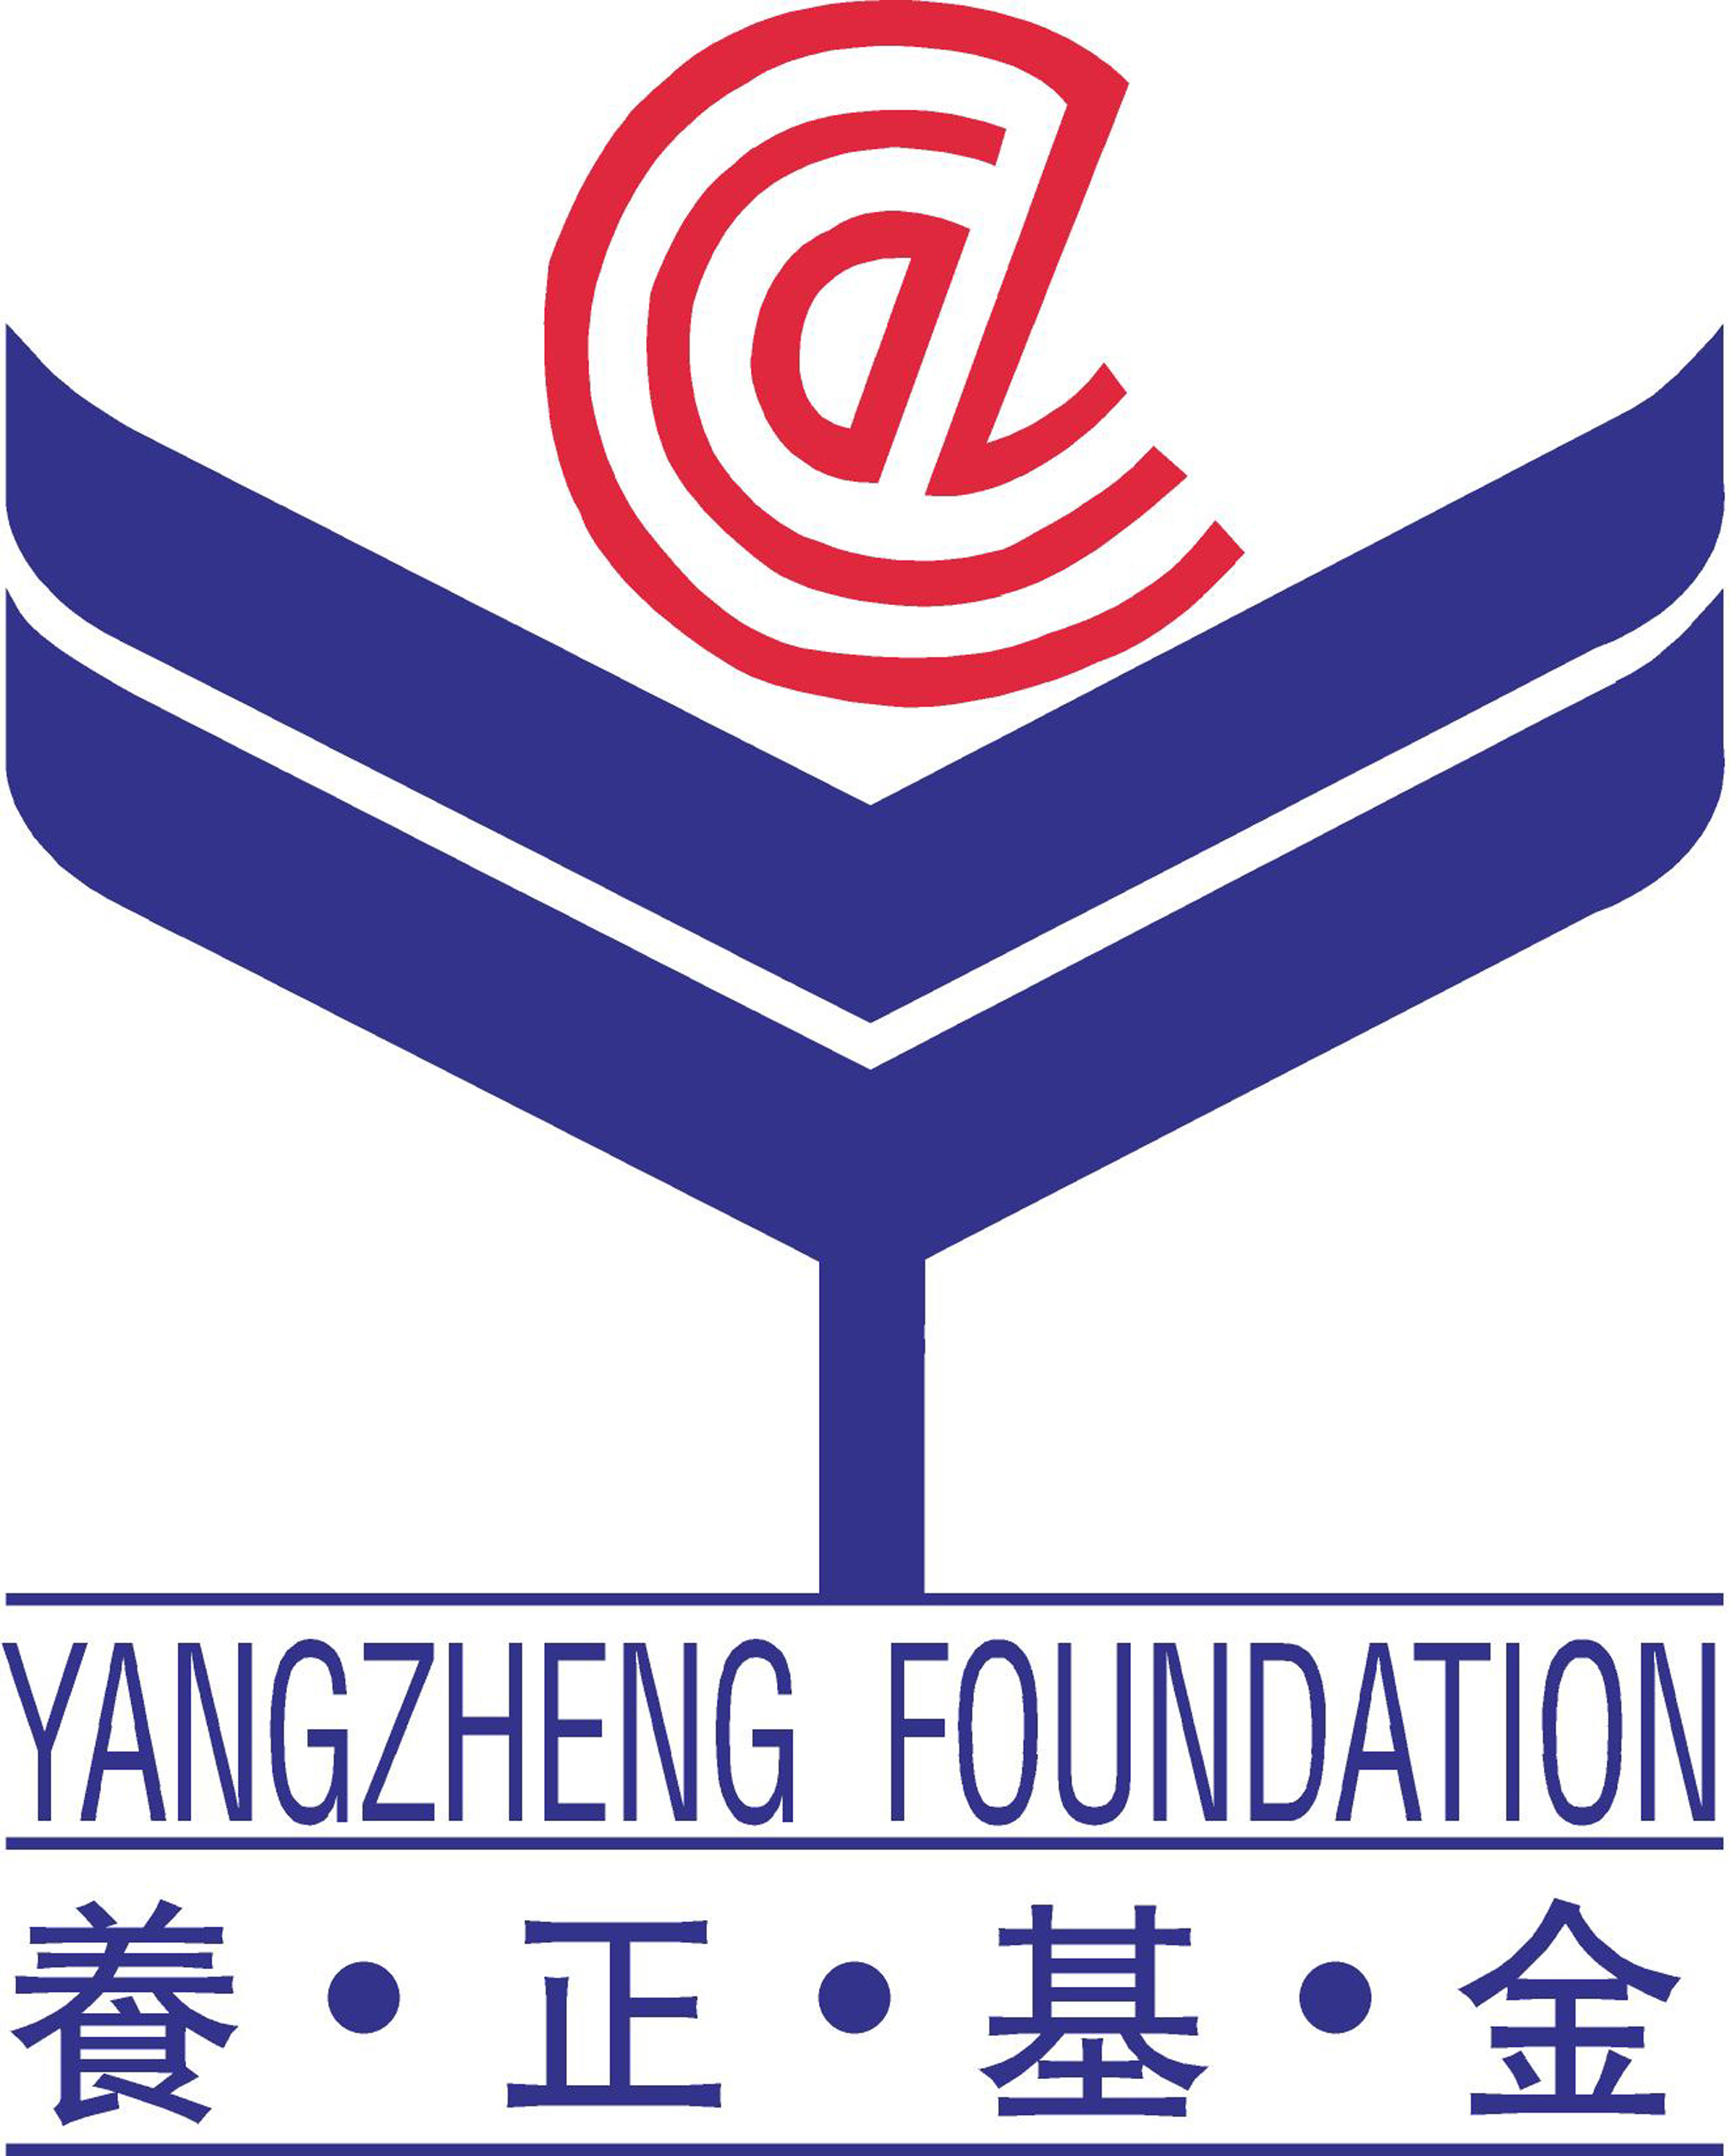 Yangzheng Foundation